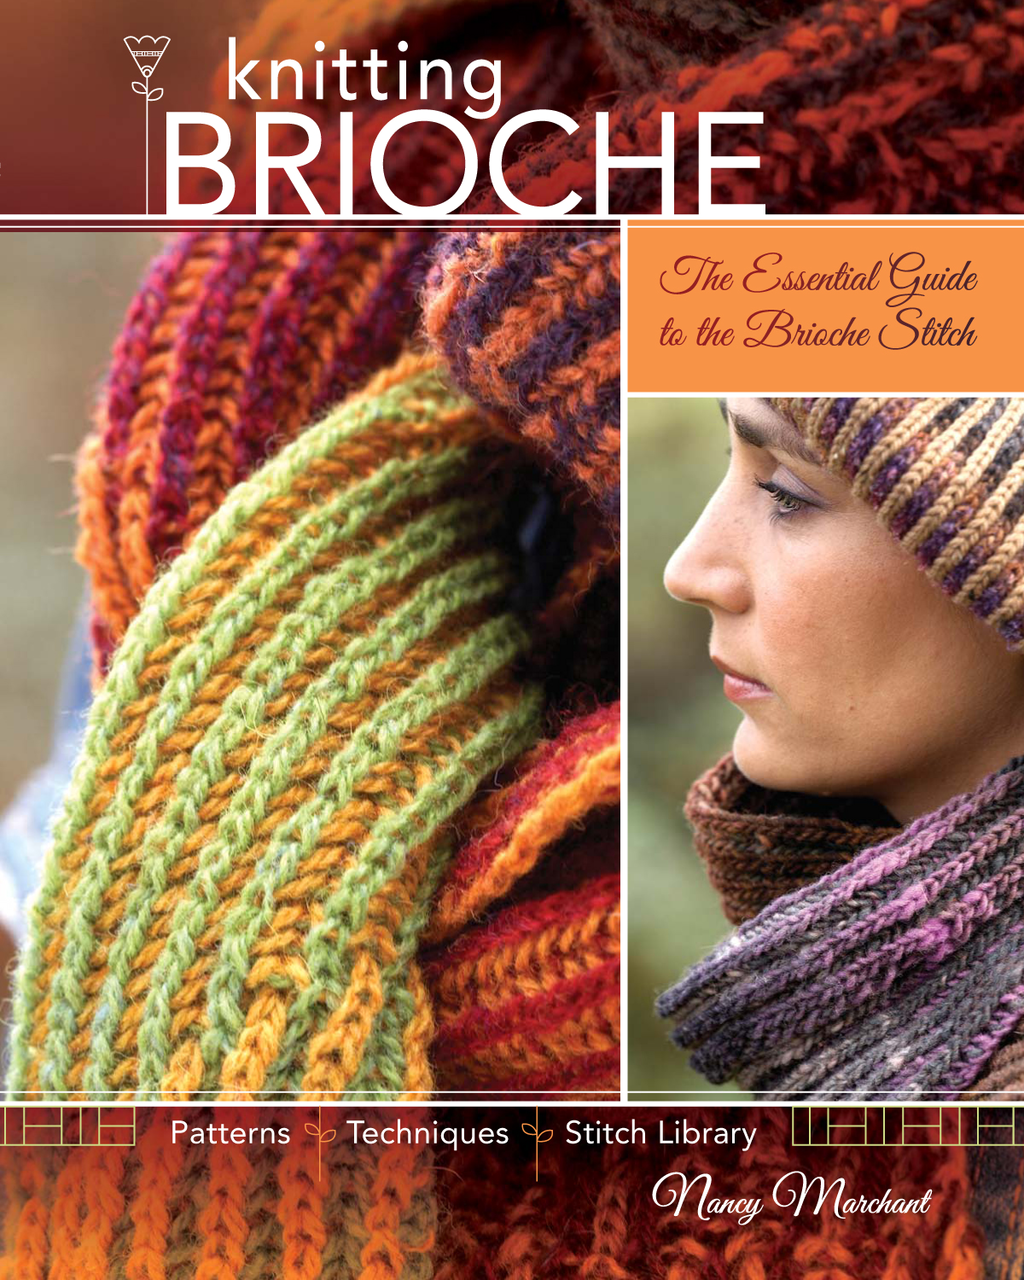 Knitting Brioche The Essential Guide to the Brioche Stitch